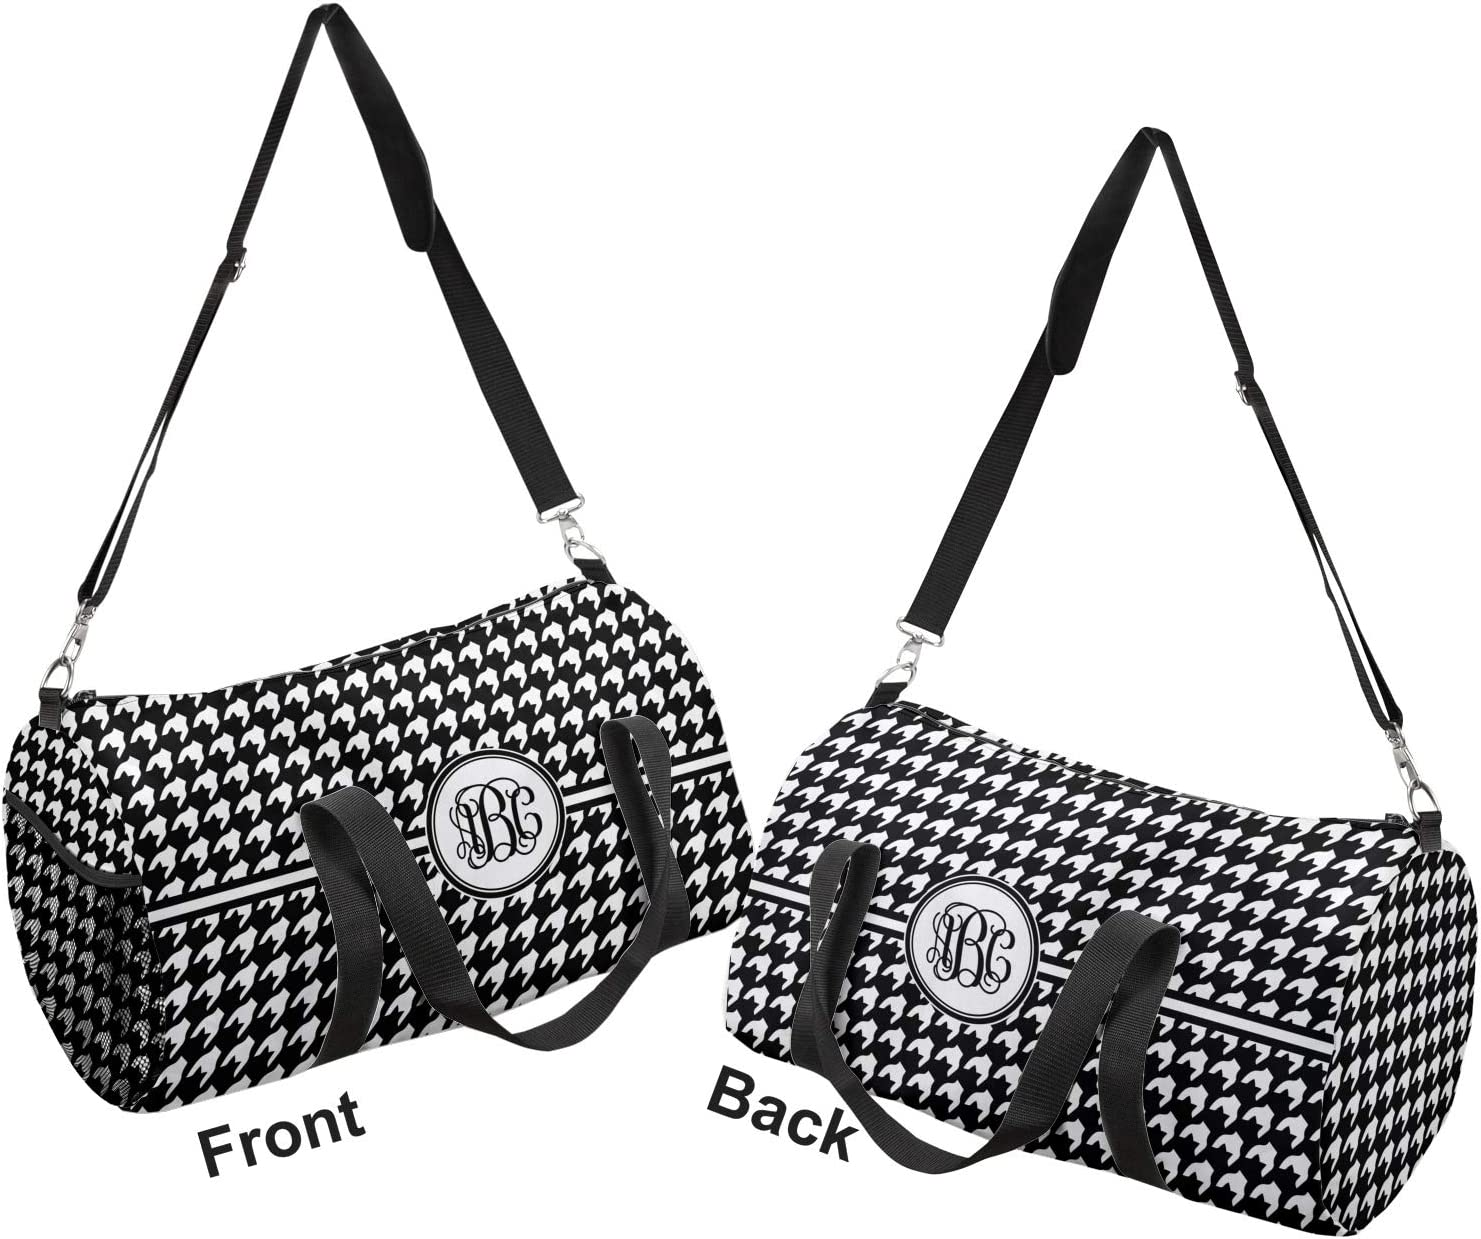 Personalized Houndstooth Duffel Bag